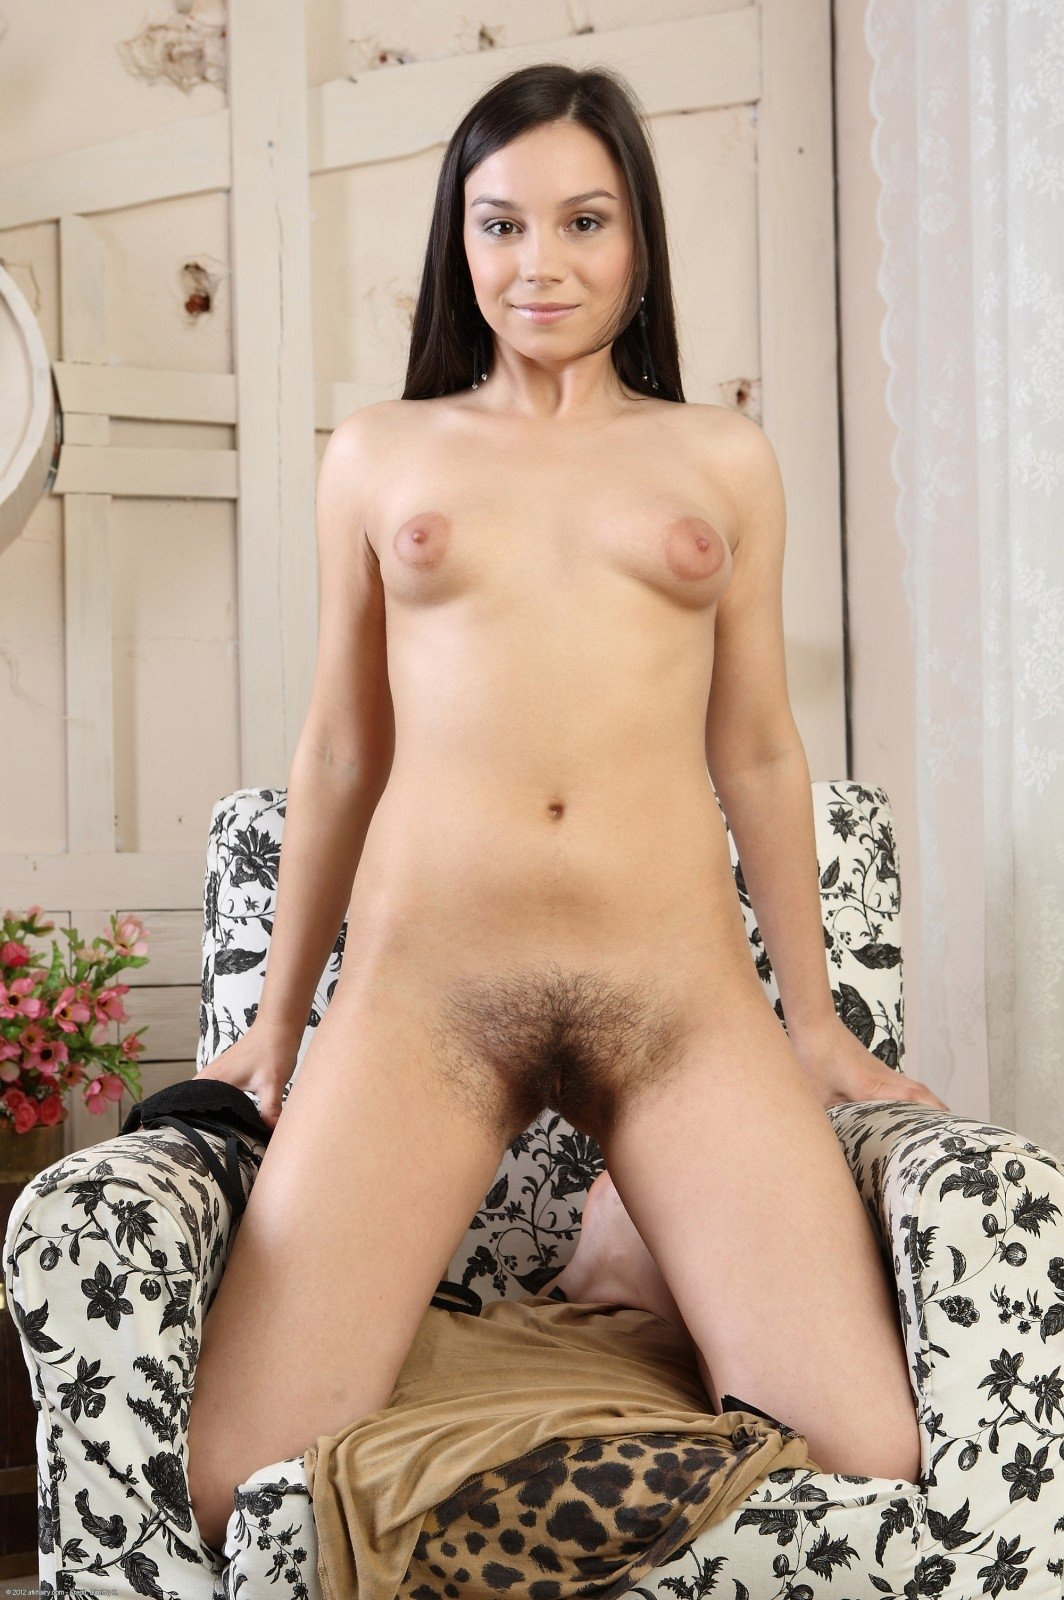 Zulkitaur    reccomend alanah rae my friends hot girl